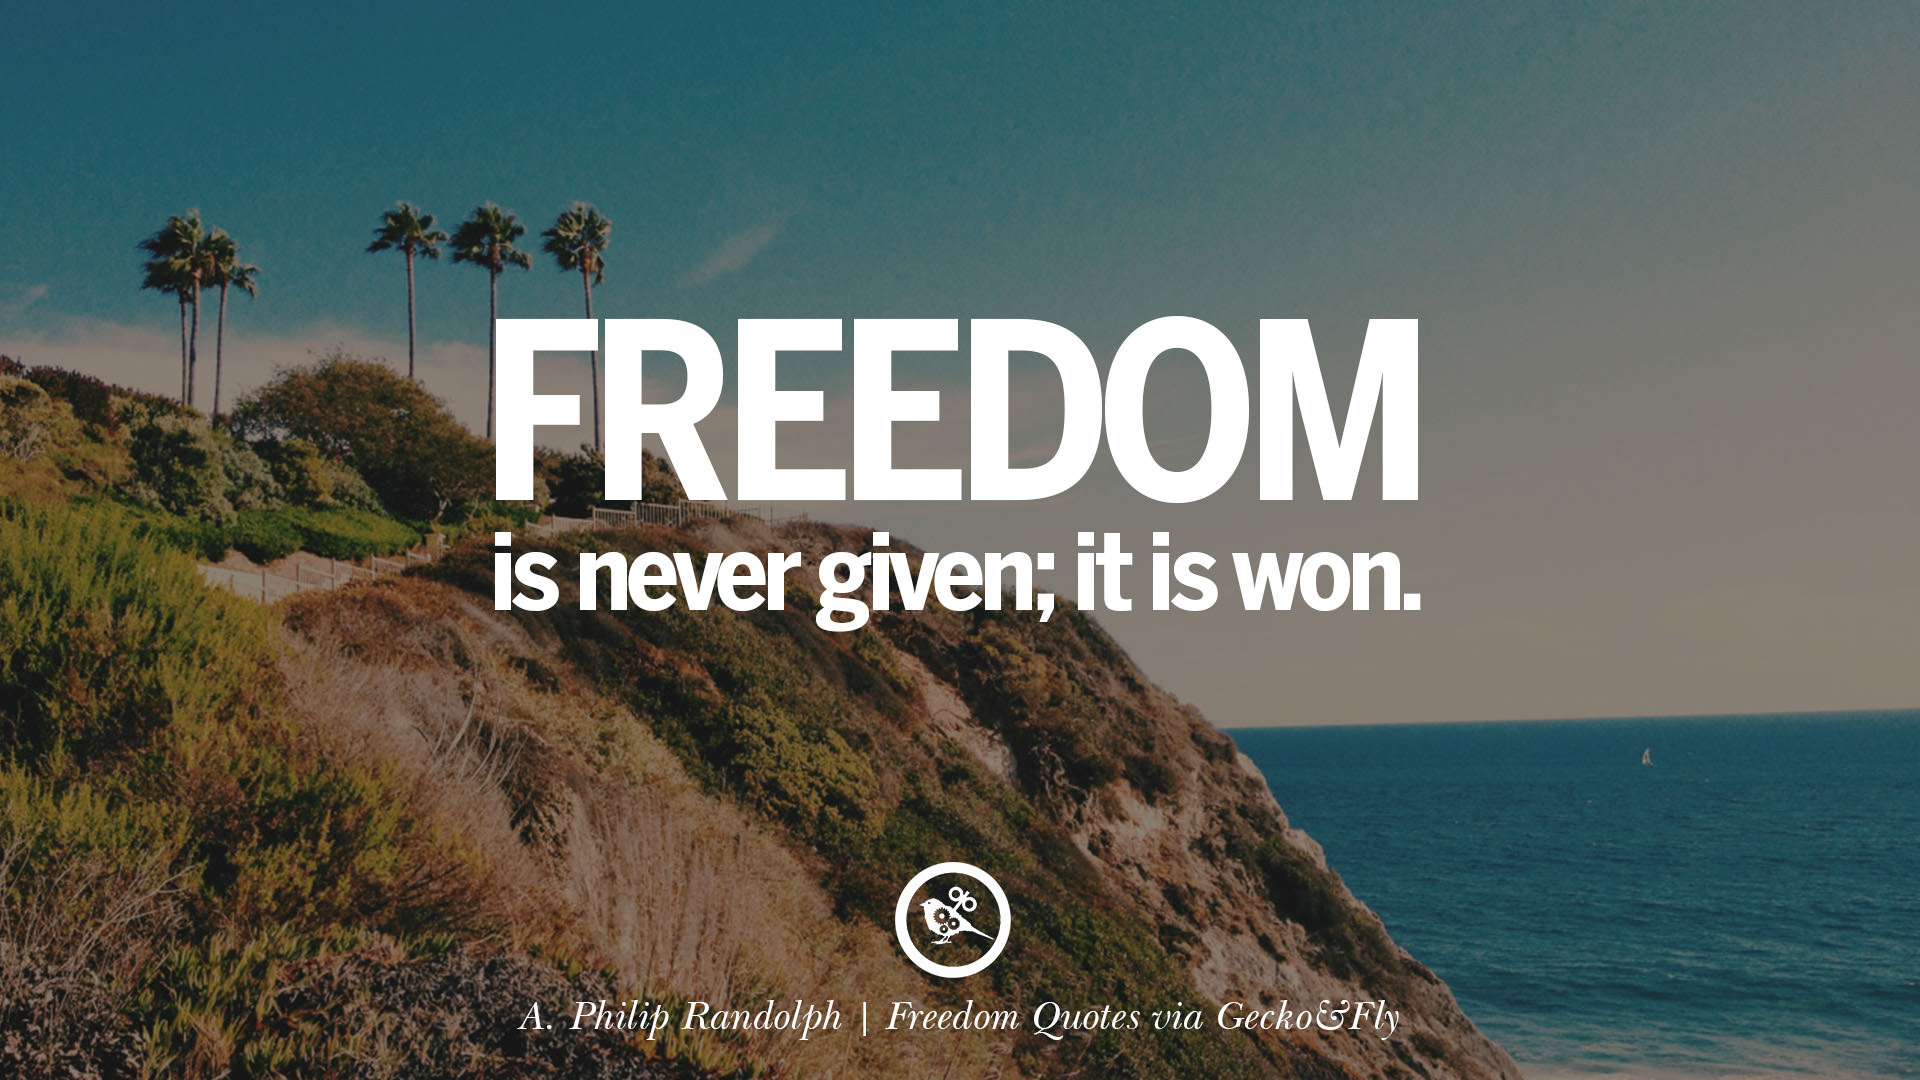 Positive Motivational Quotes: 30 Inspiring Quotes About Freedom And Liberty